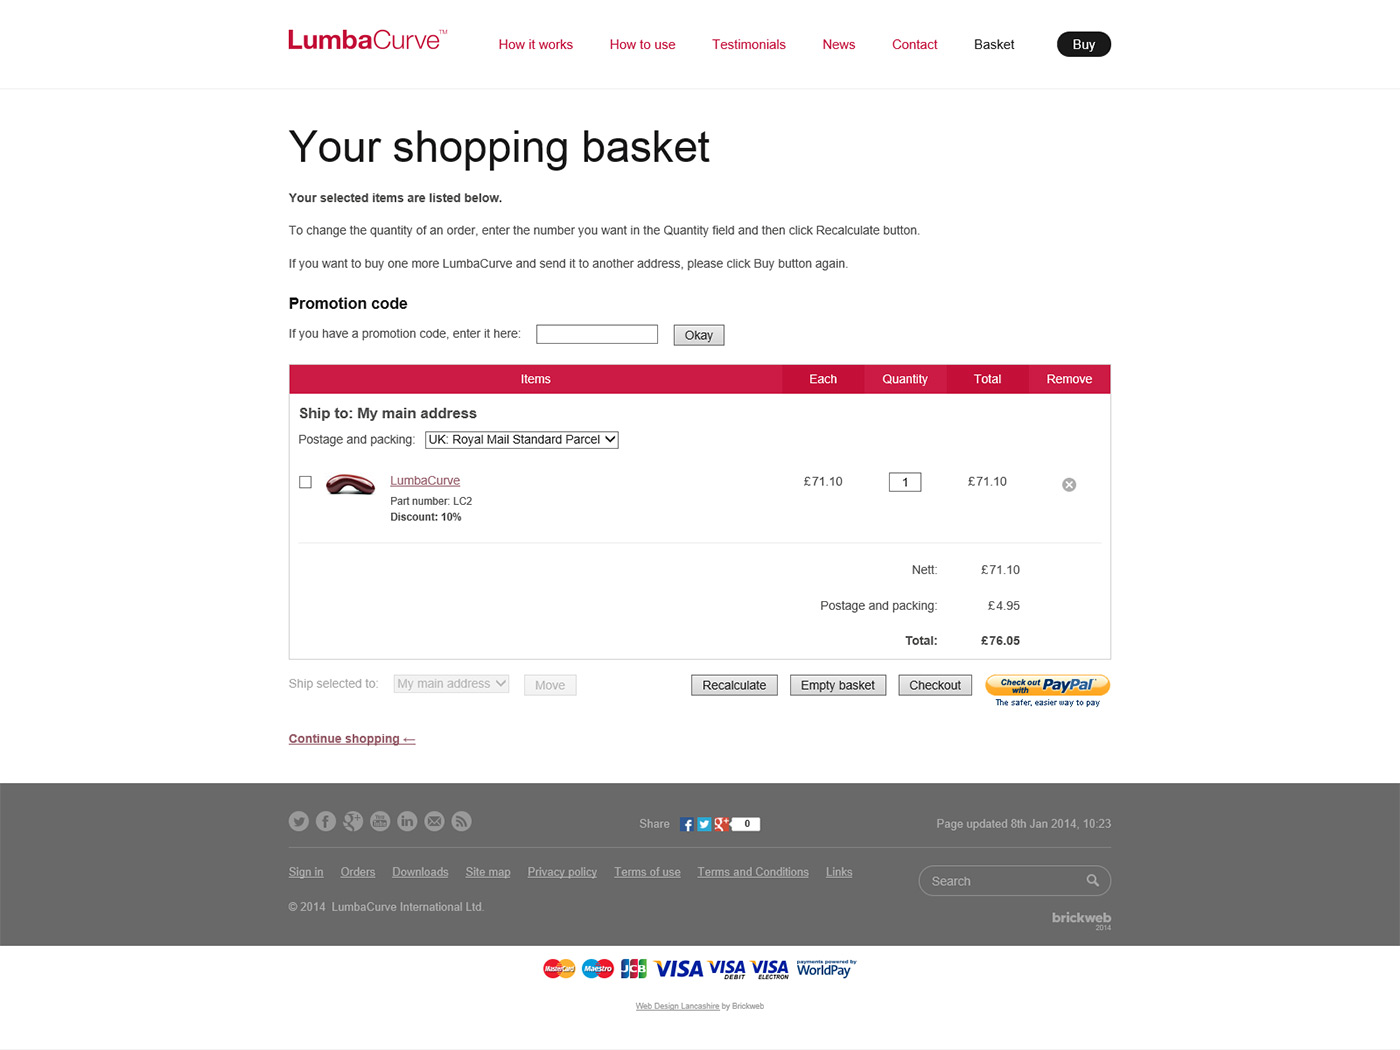 LumbaCurve Shopping basket